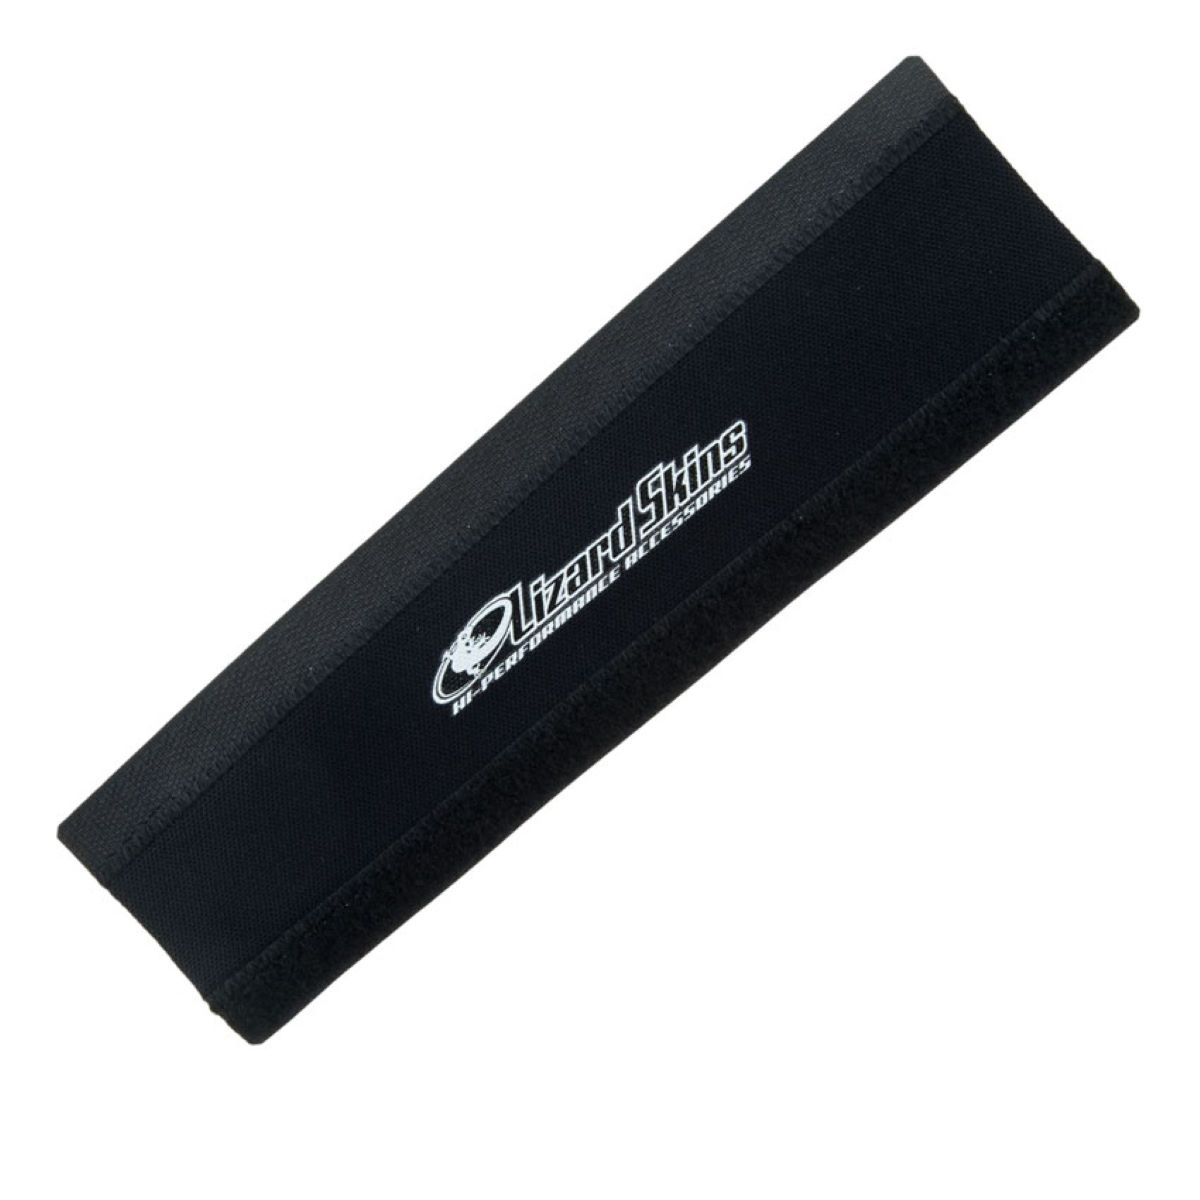 Lizard Skins Standard Chainstay Protector